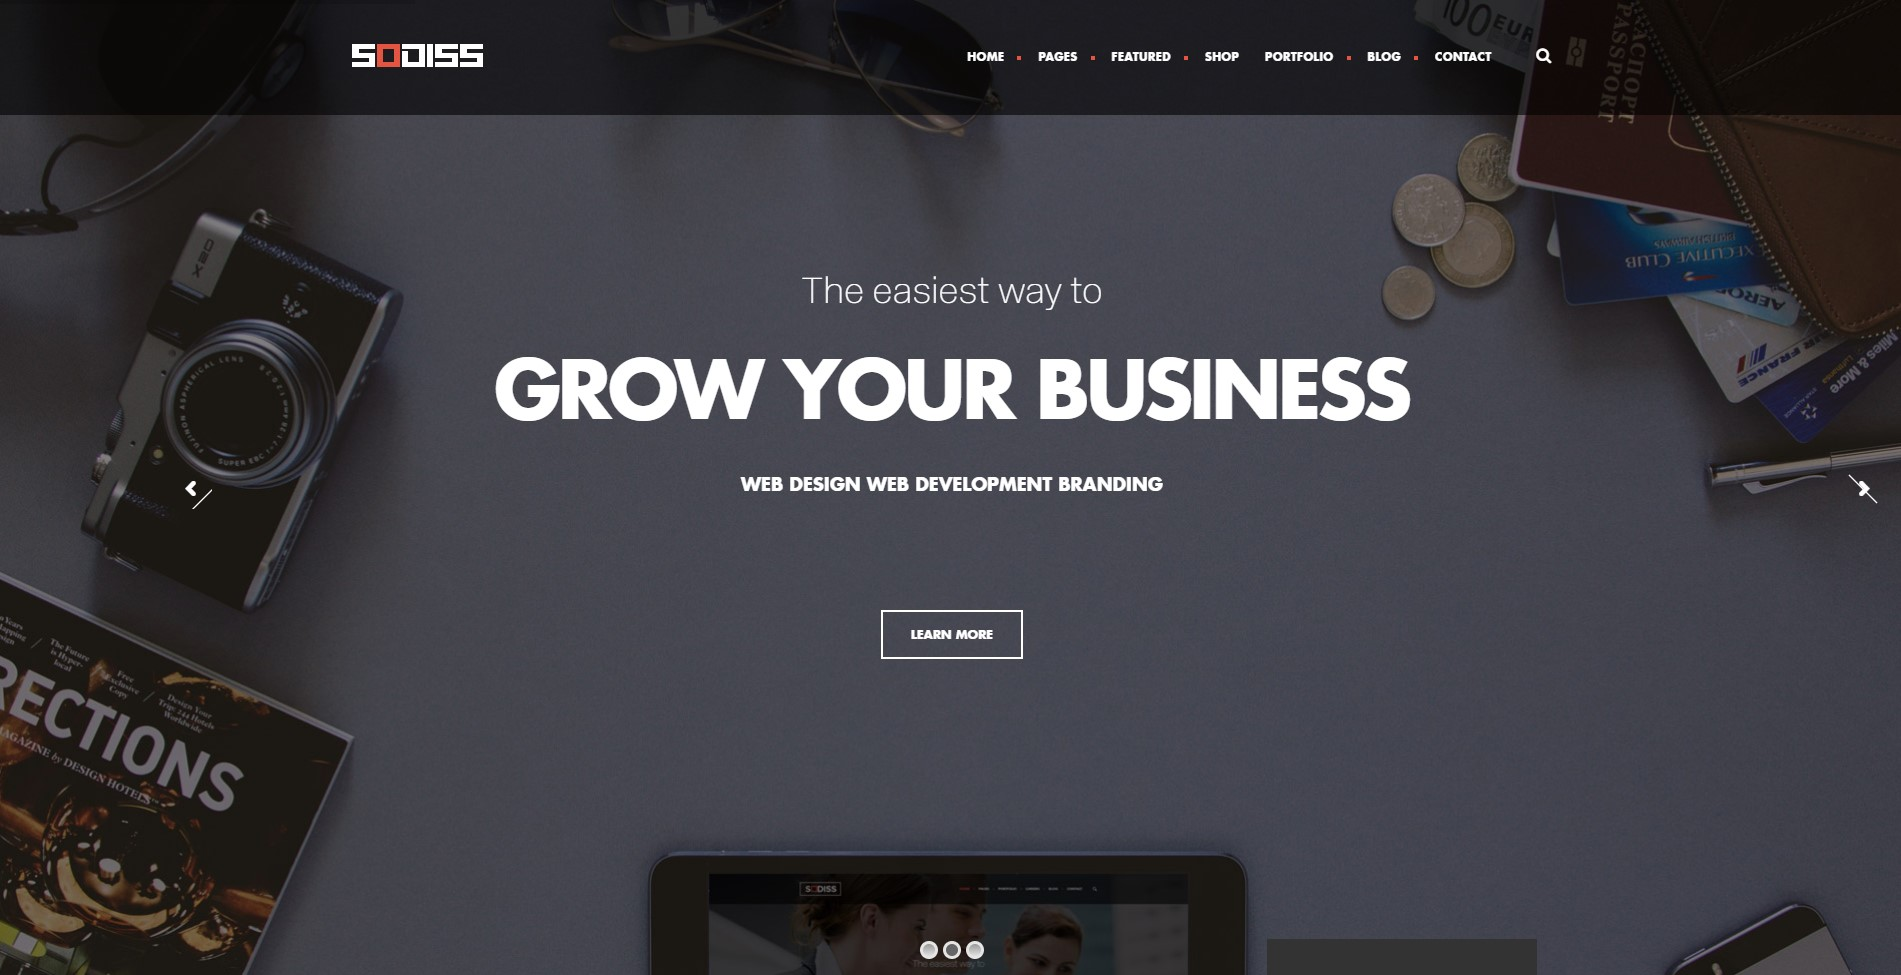 Sodiss – Modern Corporate WordPress Theme